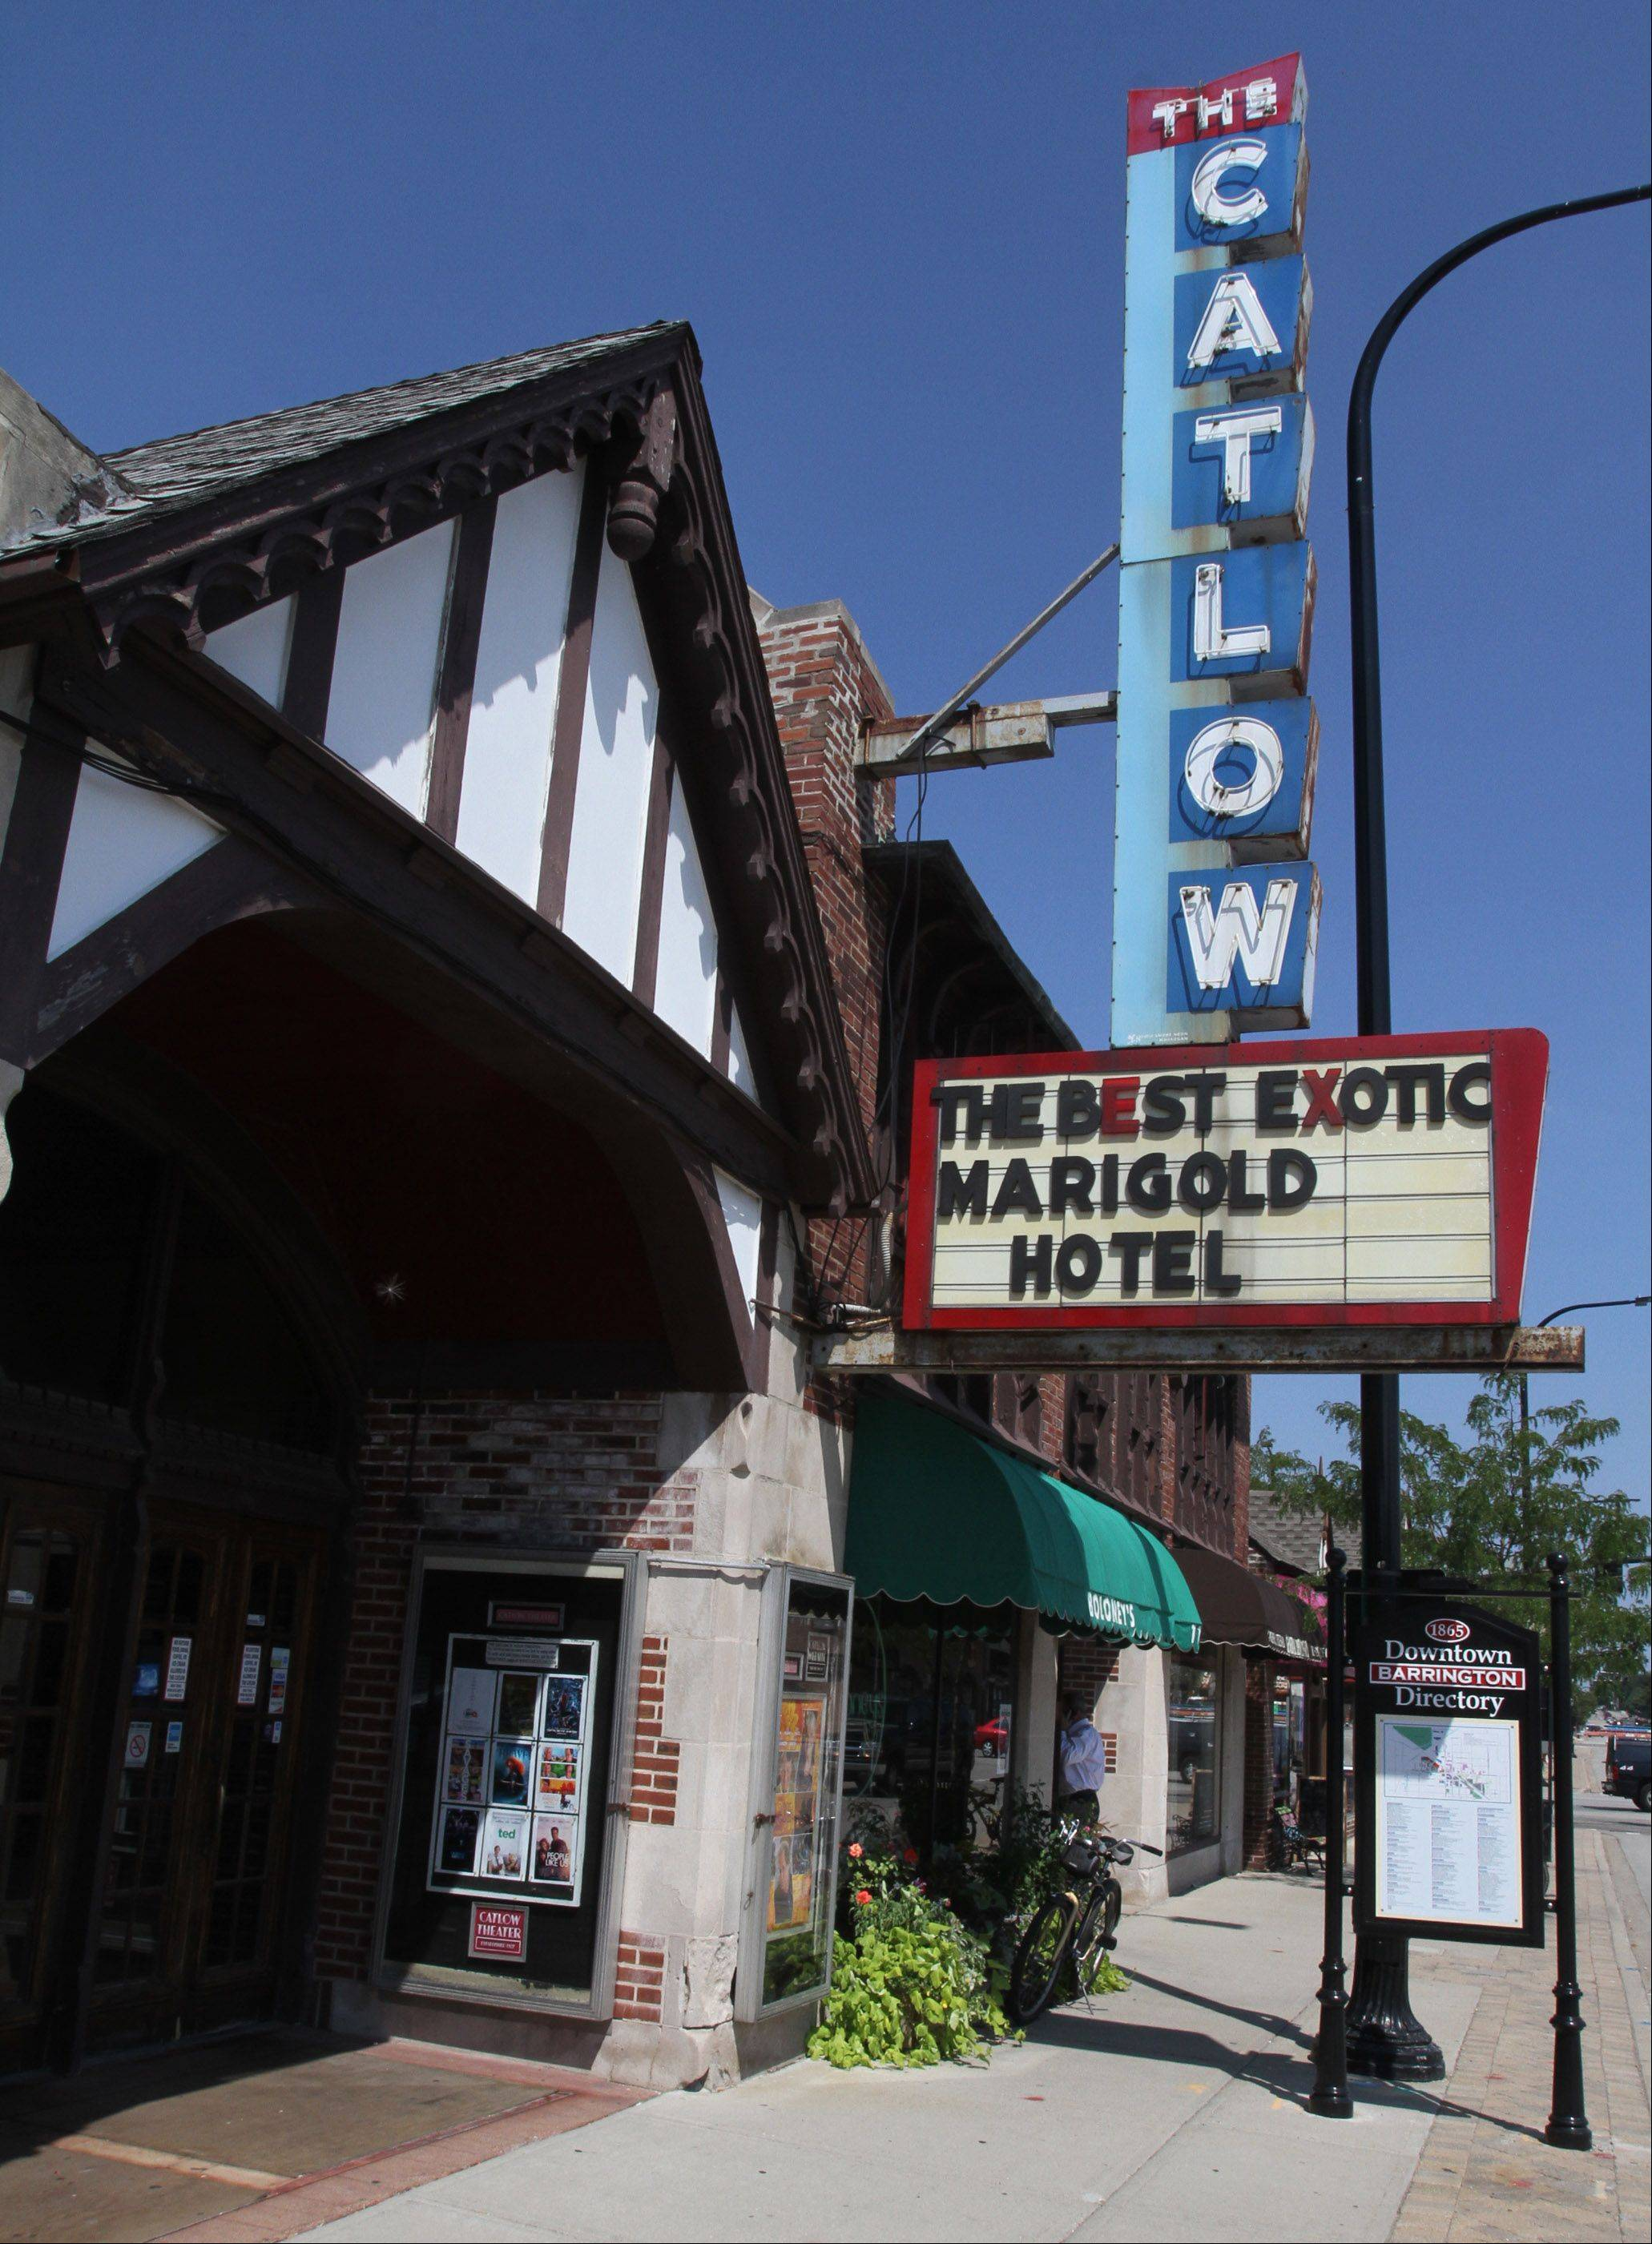 The Catlow theater in Barrington is attracting donors worldwide who just want old theater houses preserved.